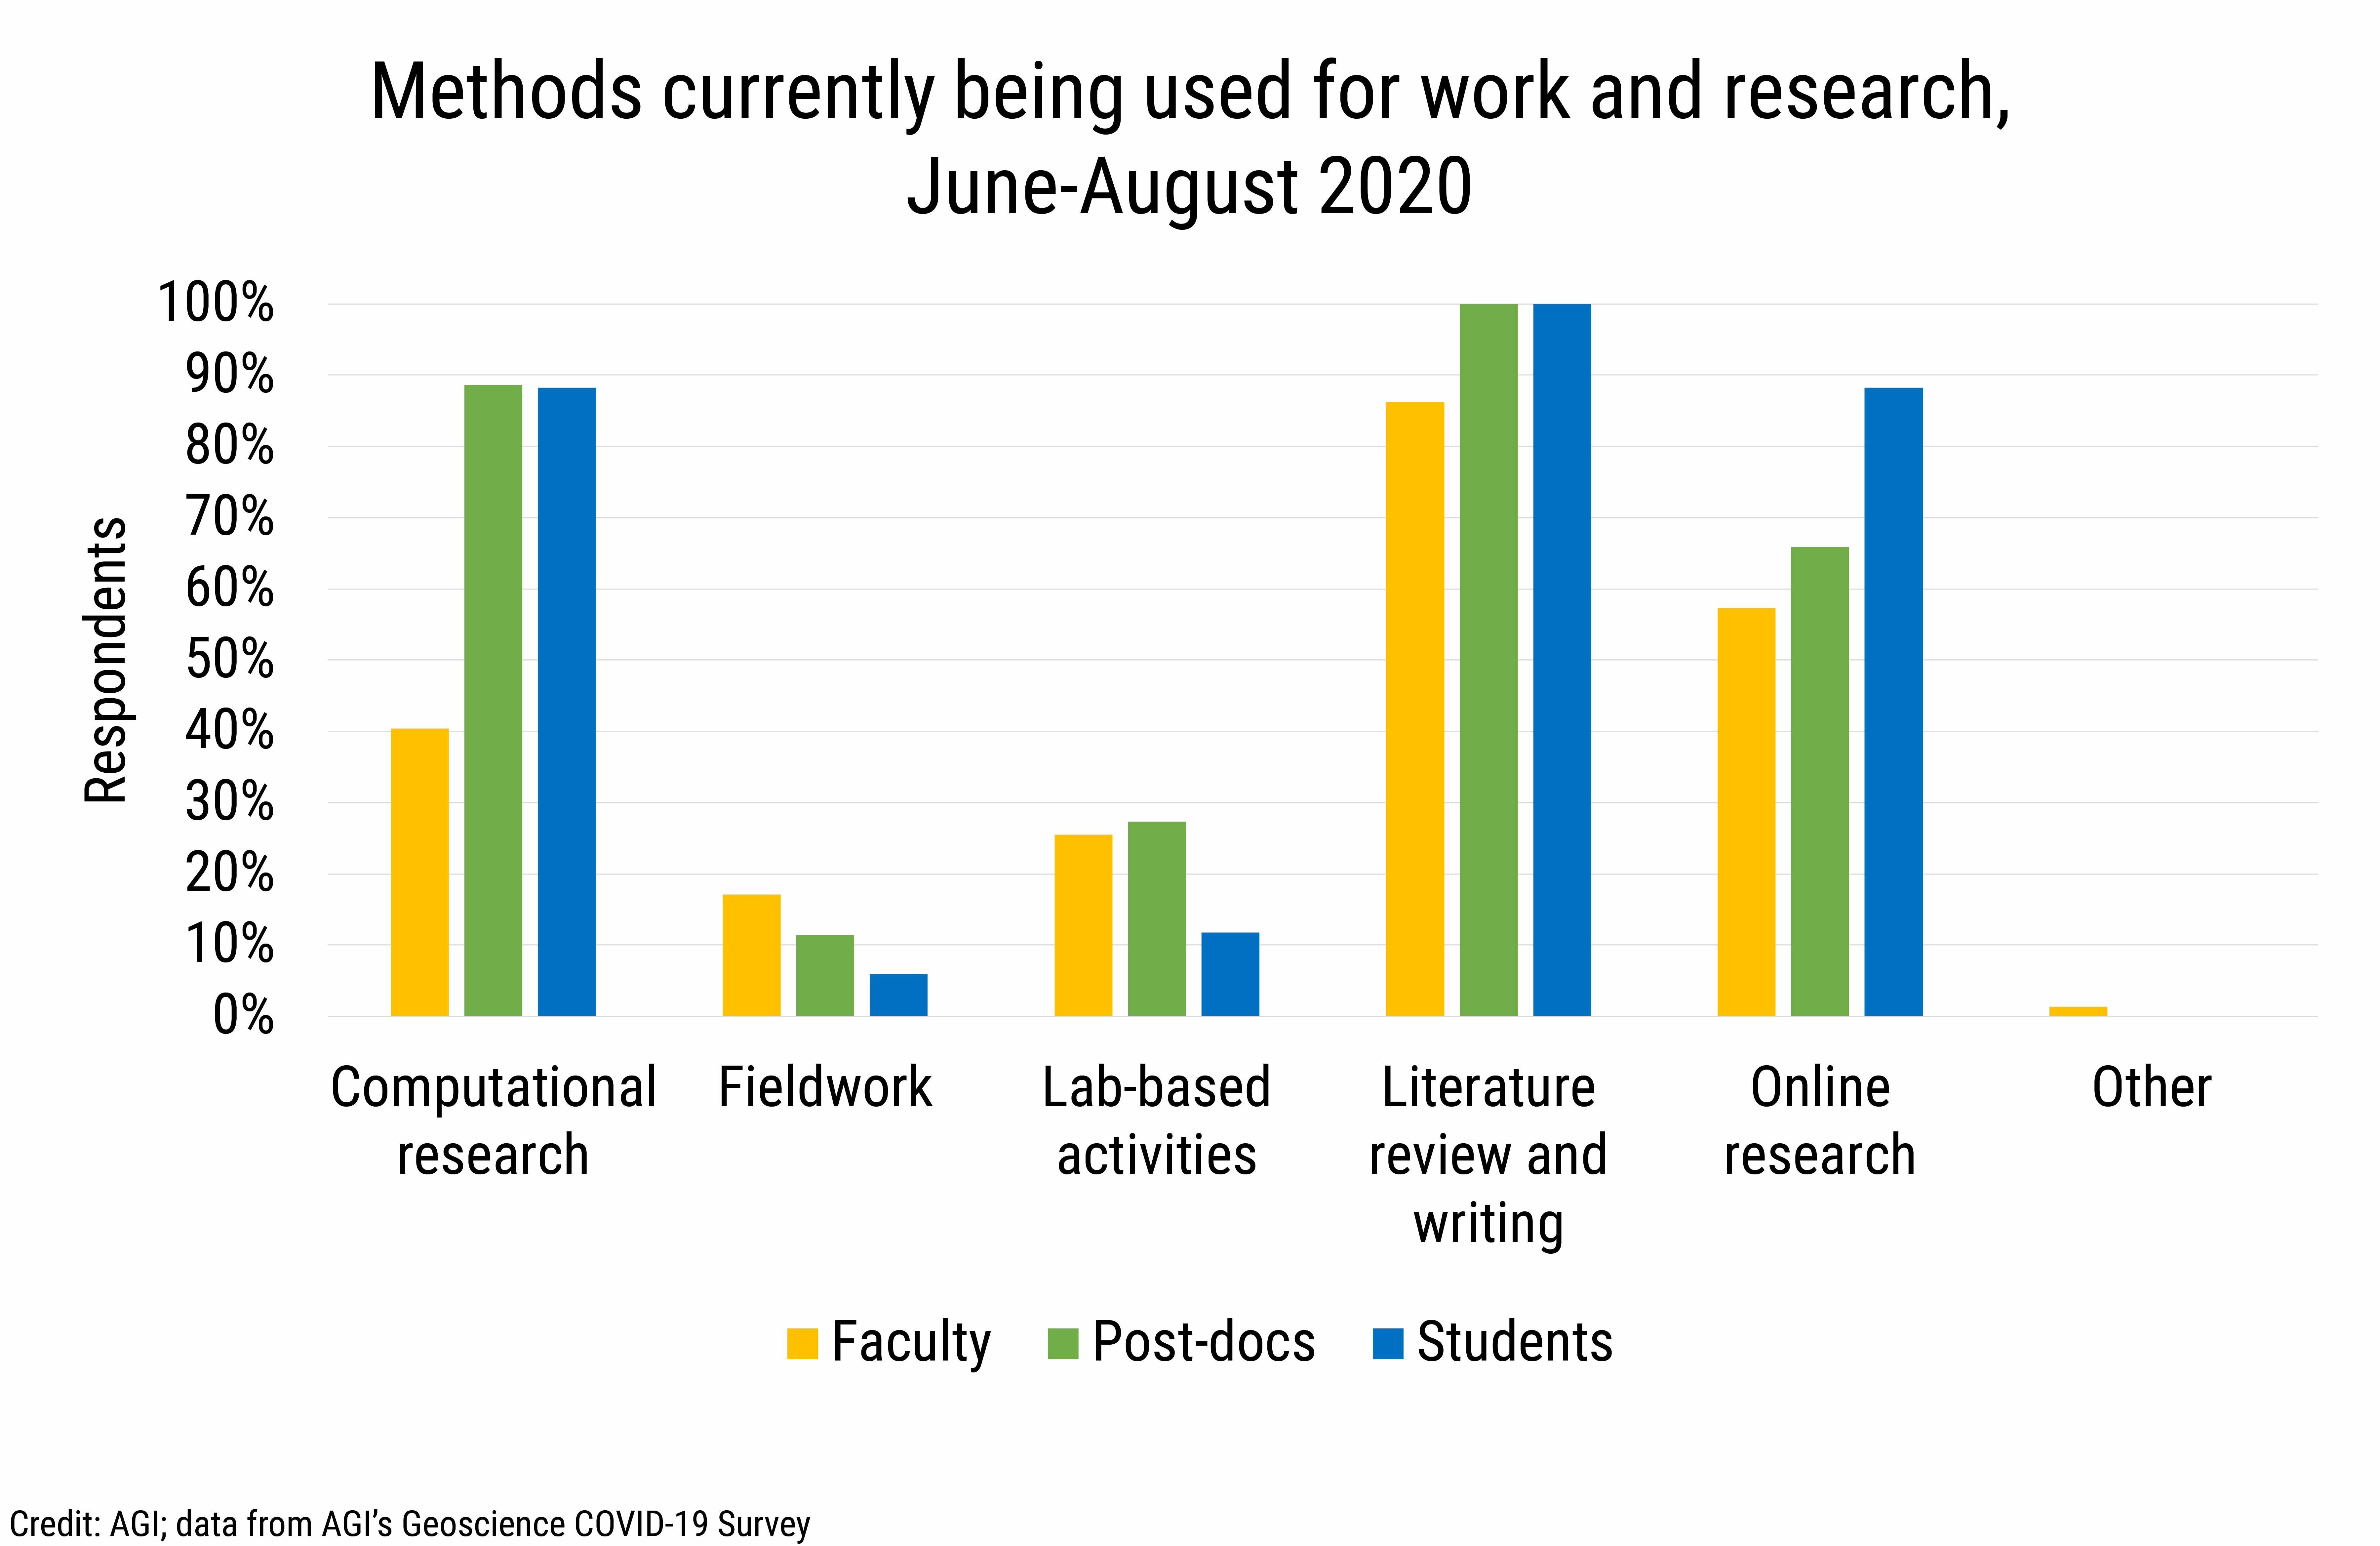 DB2020-021: chart 06: Current research modes used by faculty, postdocs and students (Credit: AGI; data from AGI's Geoscience COVID-19 Survey)